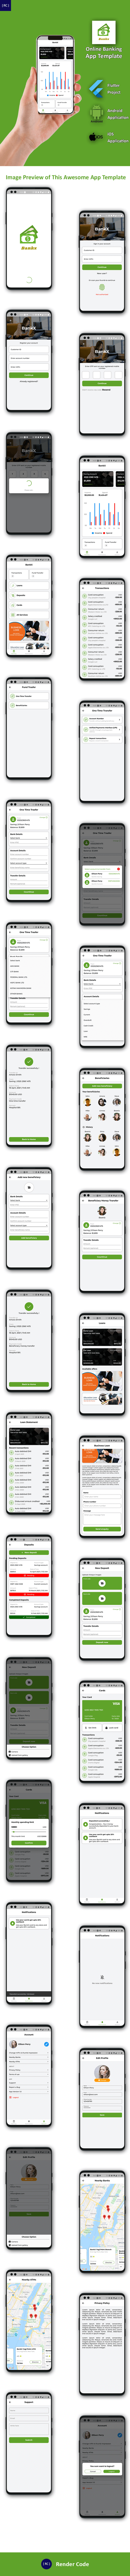 Online Banking Android App + Online Banking iOS App Template| Bank App| BankX | Flutter - 5